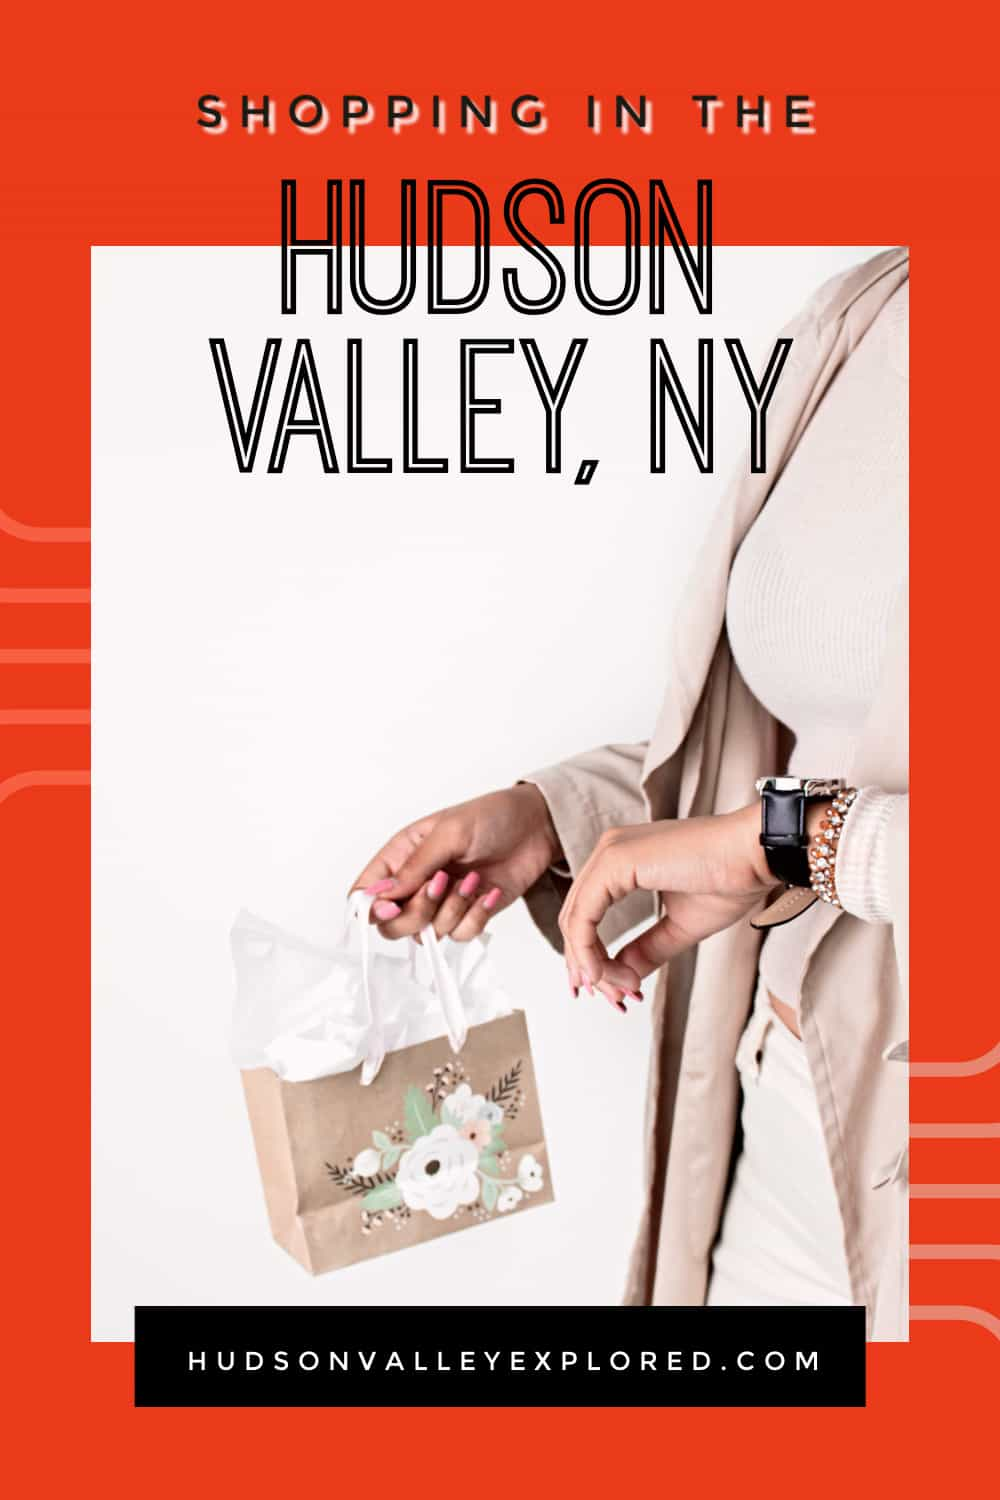 Discover shopping in the Hudson Valley New York. Hudson Valley Malls are popular especially during the Hudson Valley Holiday Season. This list of Malls and shops in the Hudson Valley will help you find the perfect place to shop. Things to do in the Hudson Valley | Things to do in New York #newyork